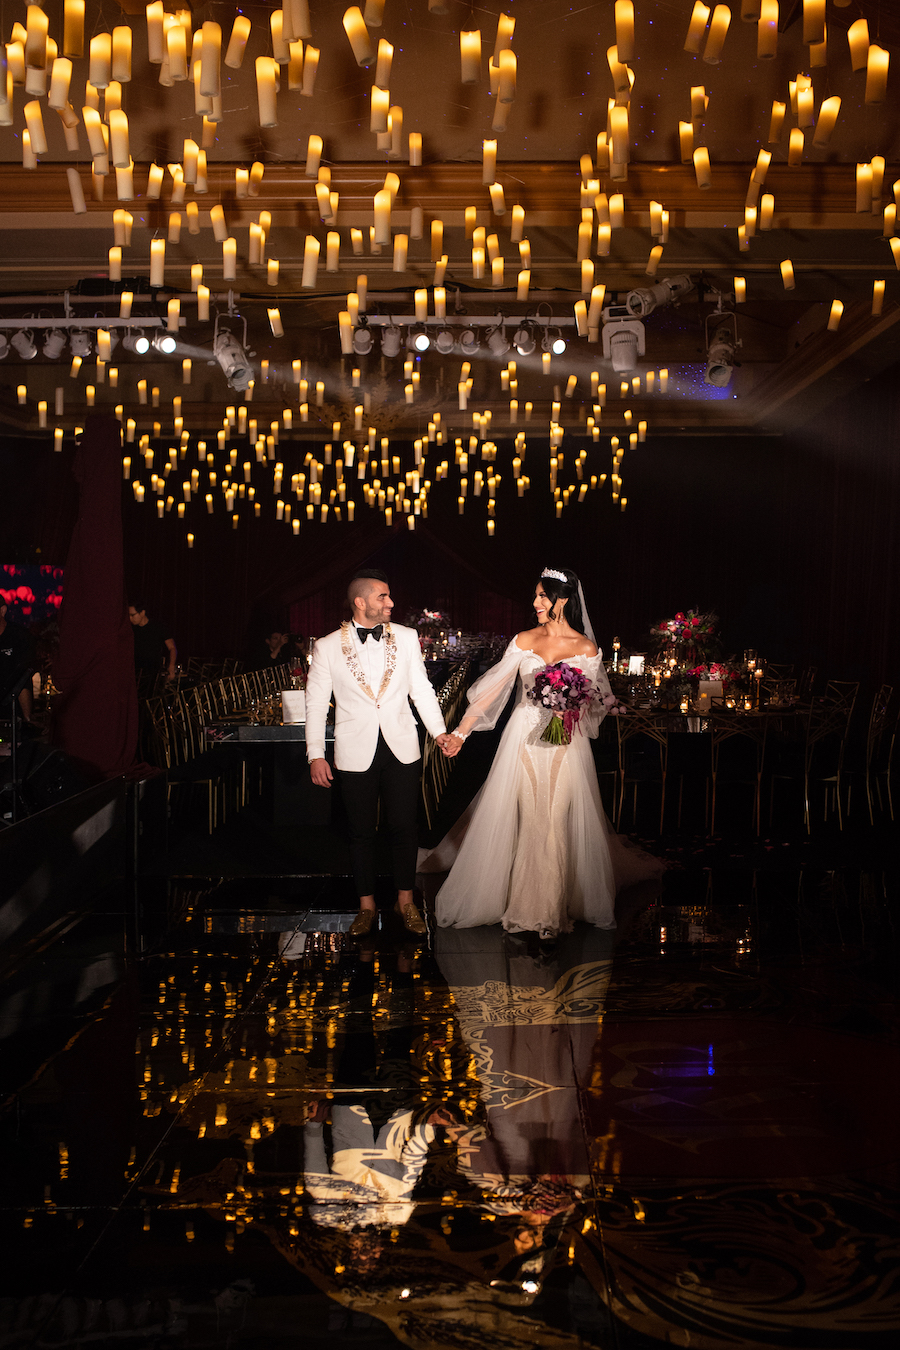 bride and groom on beautifully lit dance floor with floating candle lights